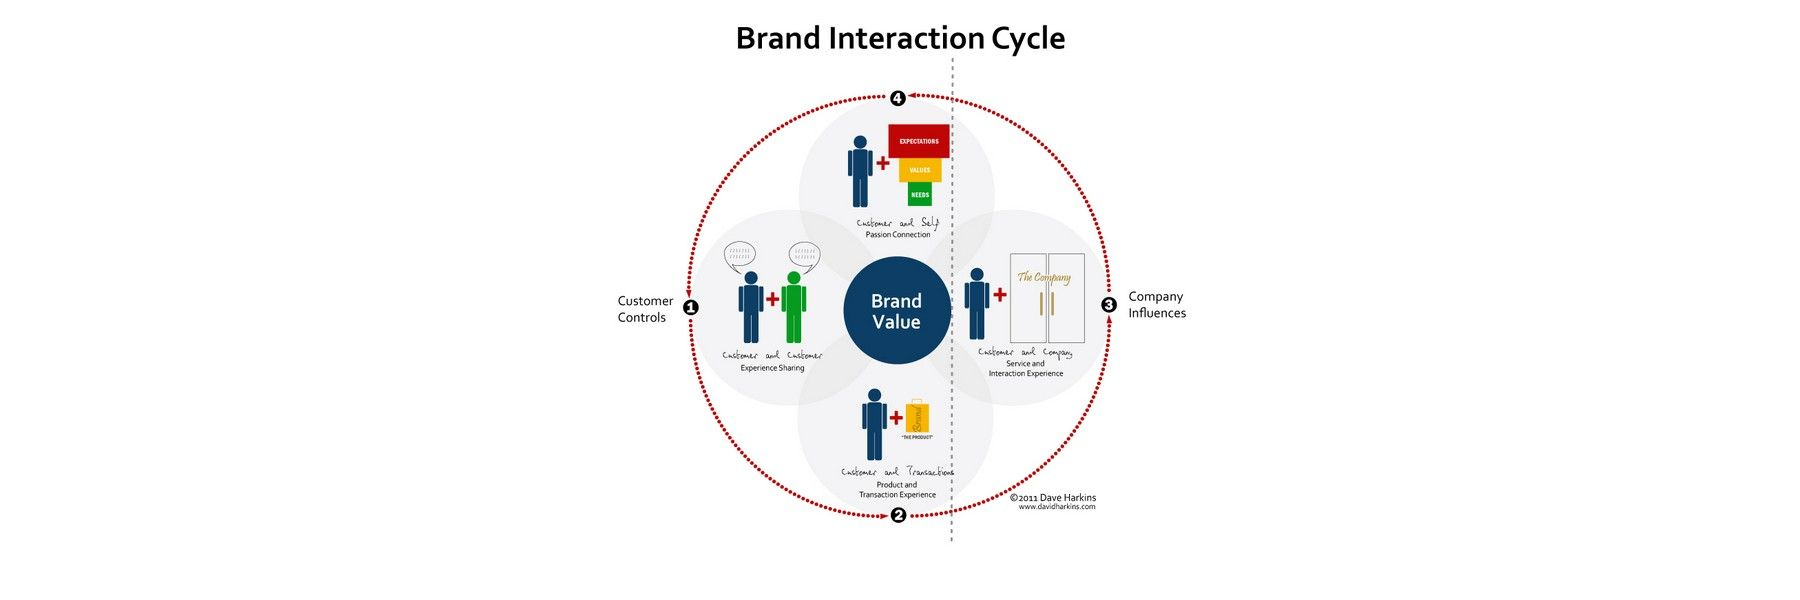 The Moment of Truth - Build Desirable Relationships with Users and Customers